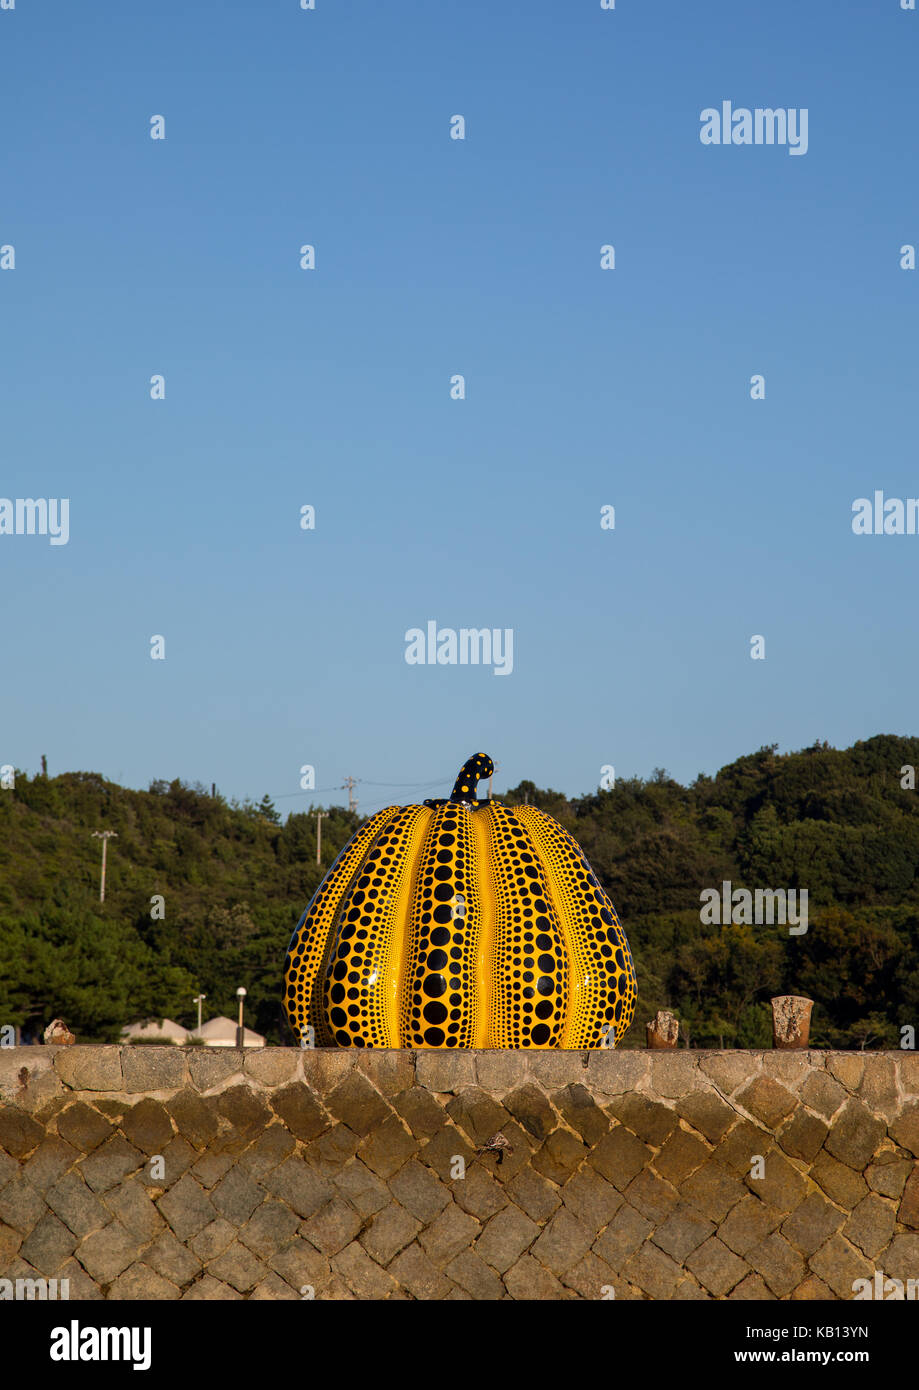 Yellow pumpkin by yayoi kusama on pier at sea, Seto Inland Sea, Naoshima, Japan Stock Photo